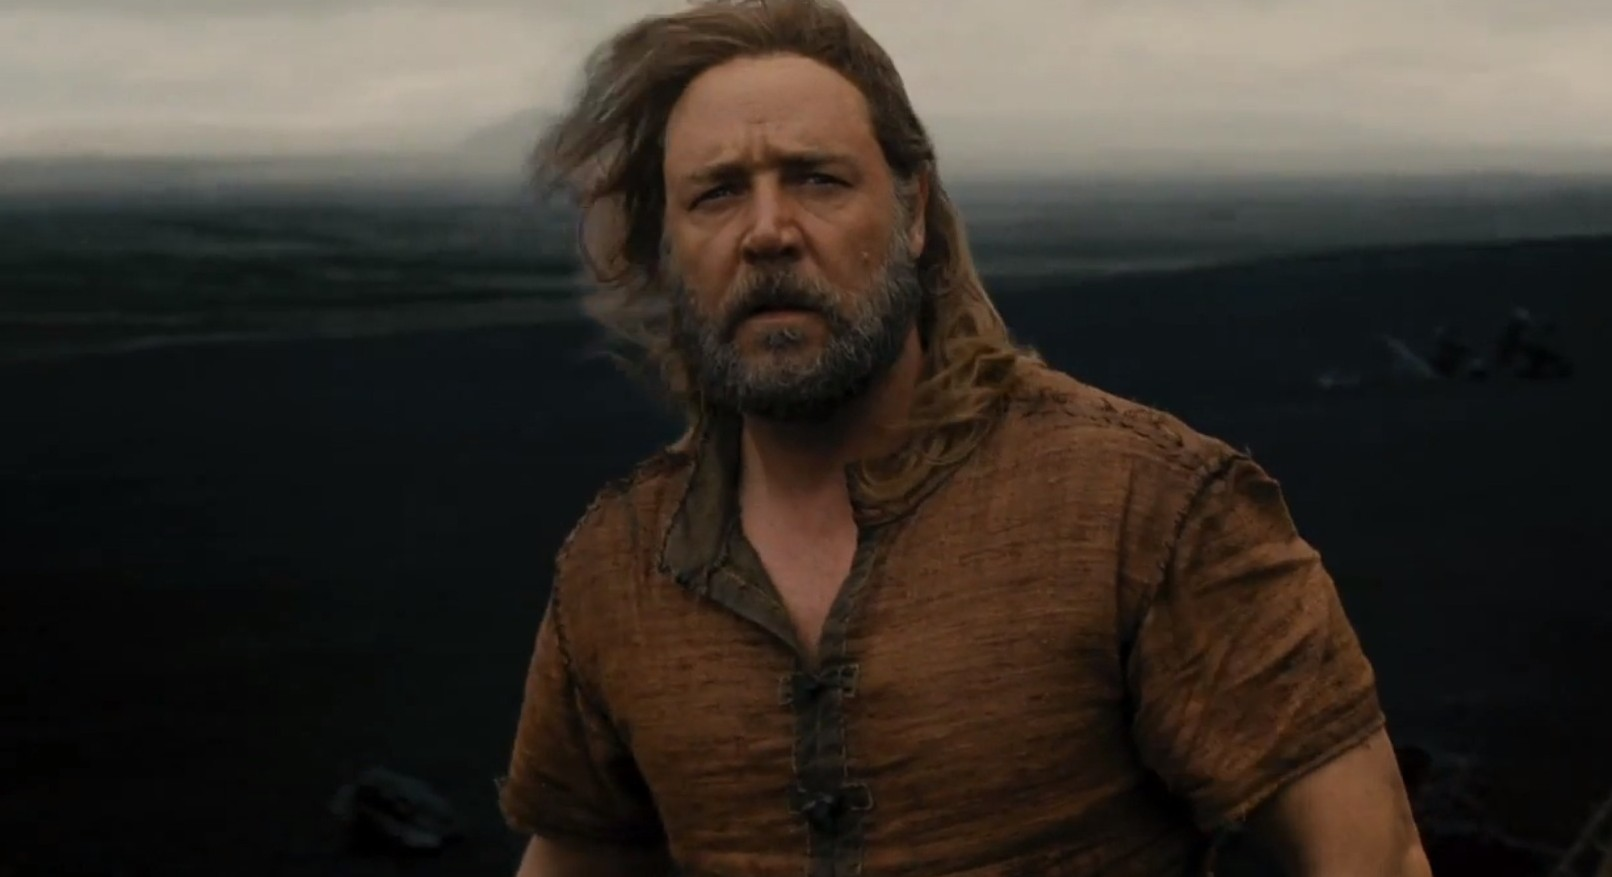 Russell Crowe faces a flood in epic first trailer for Darren Aronofsky's Noah